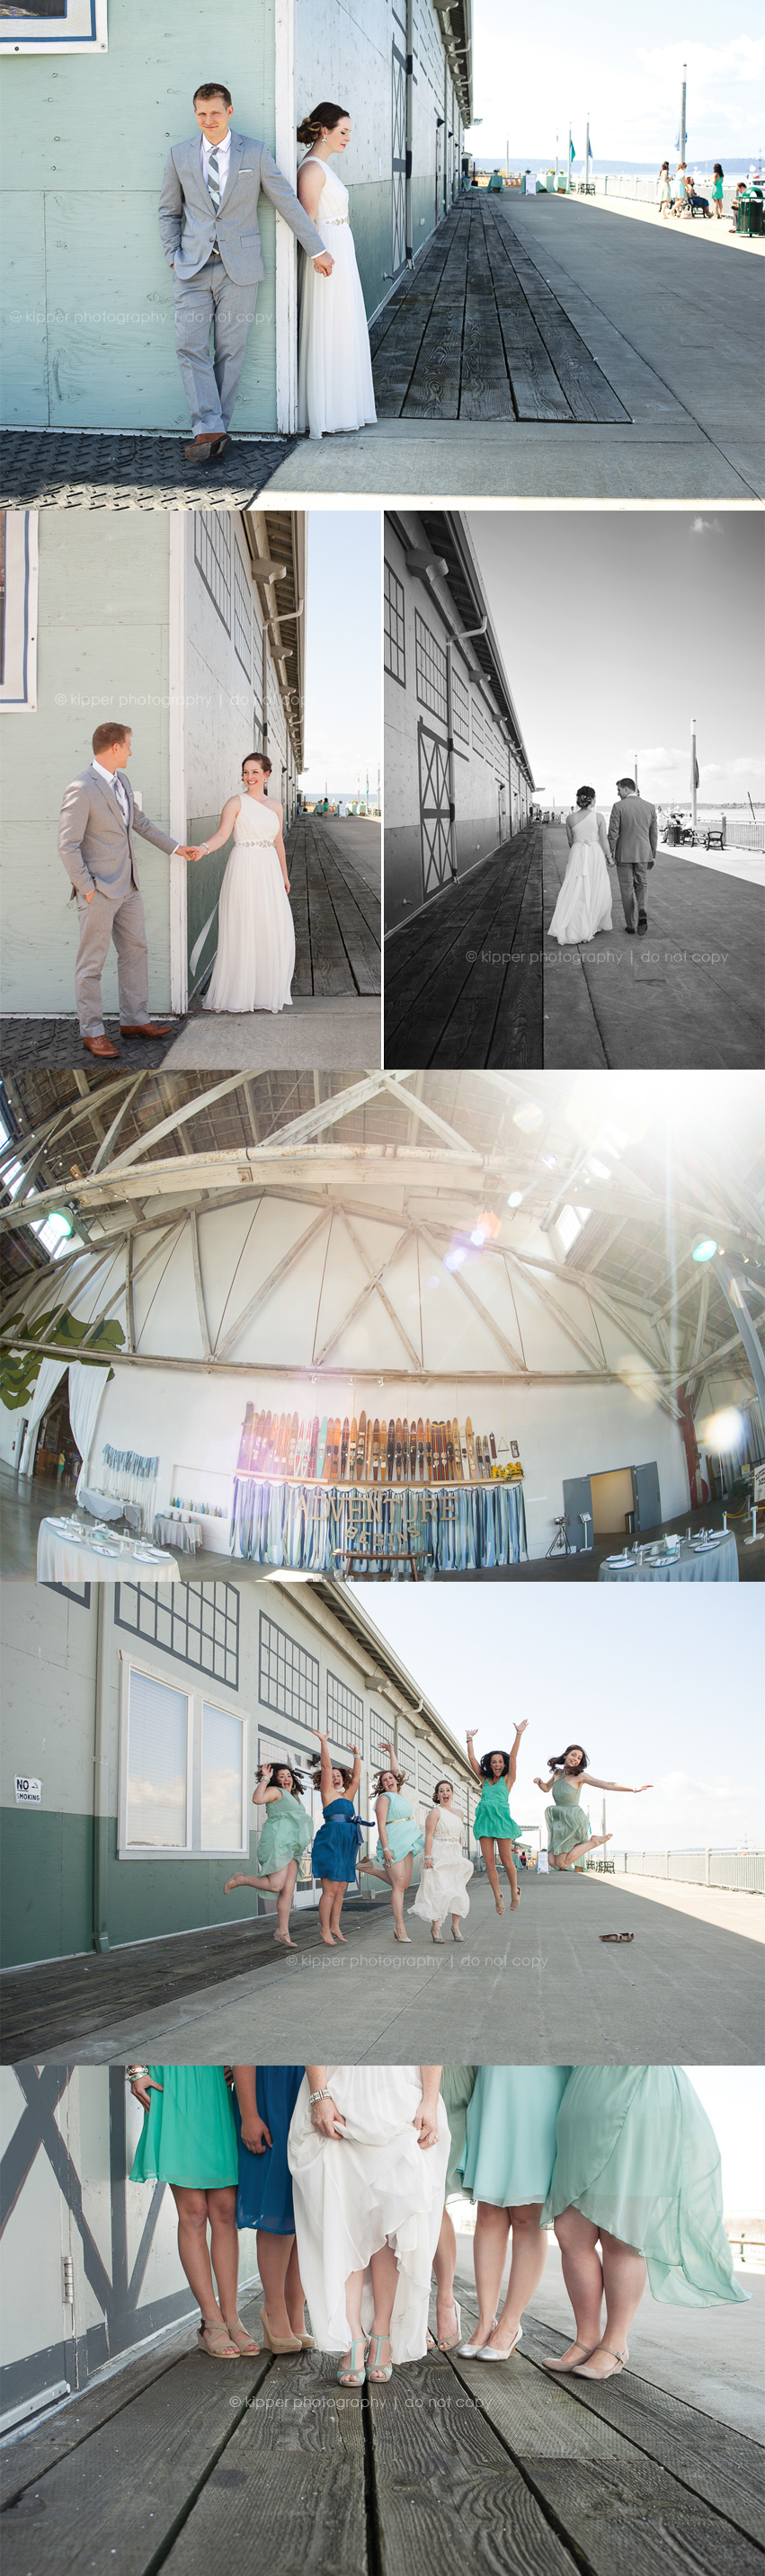 olympia wedding photographer